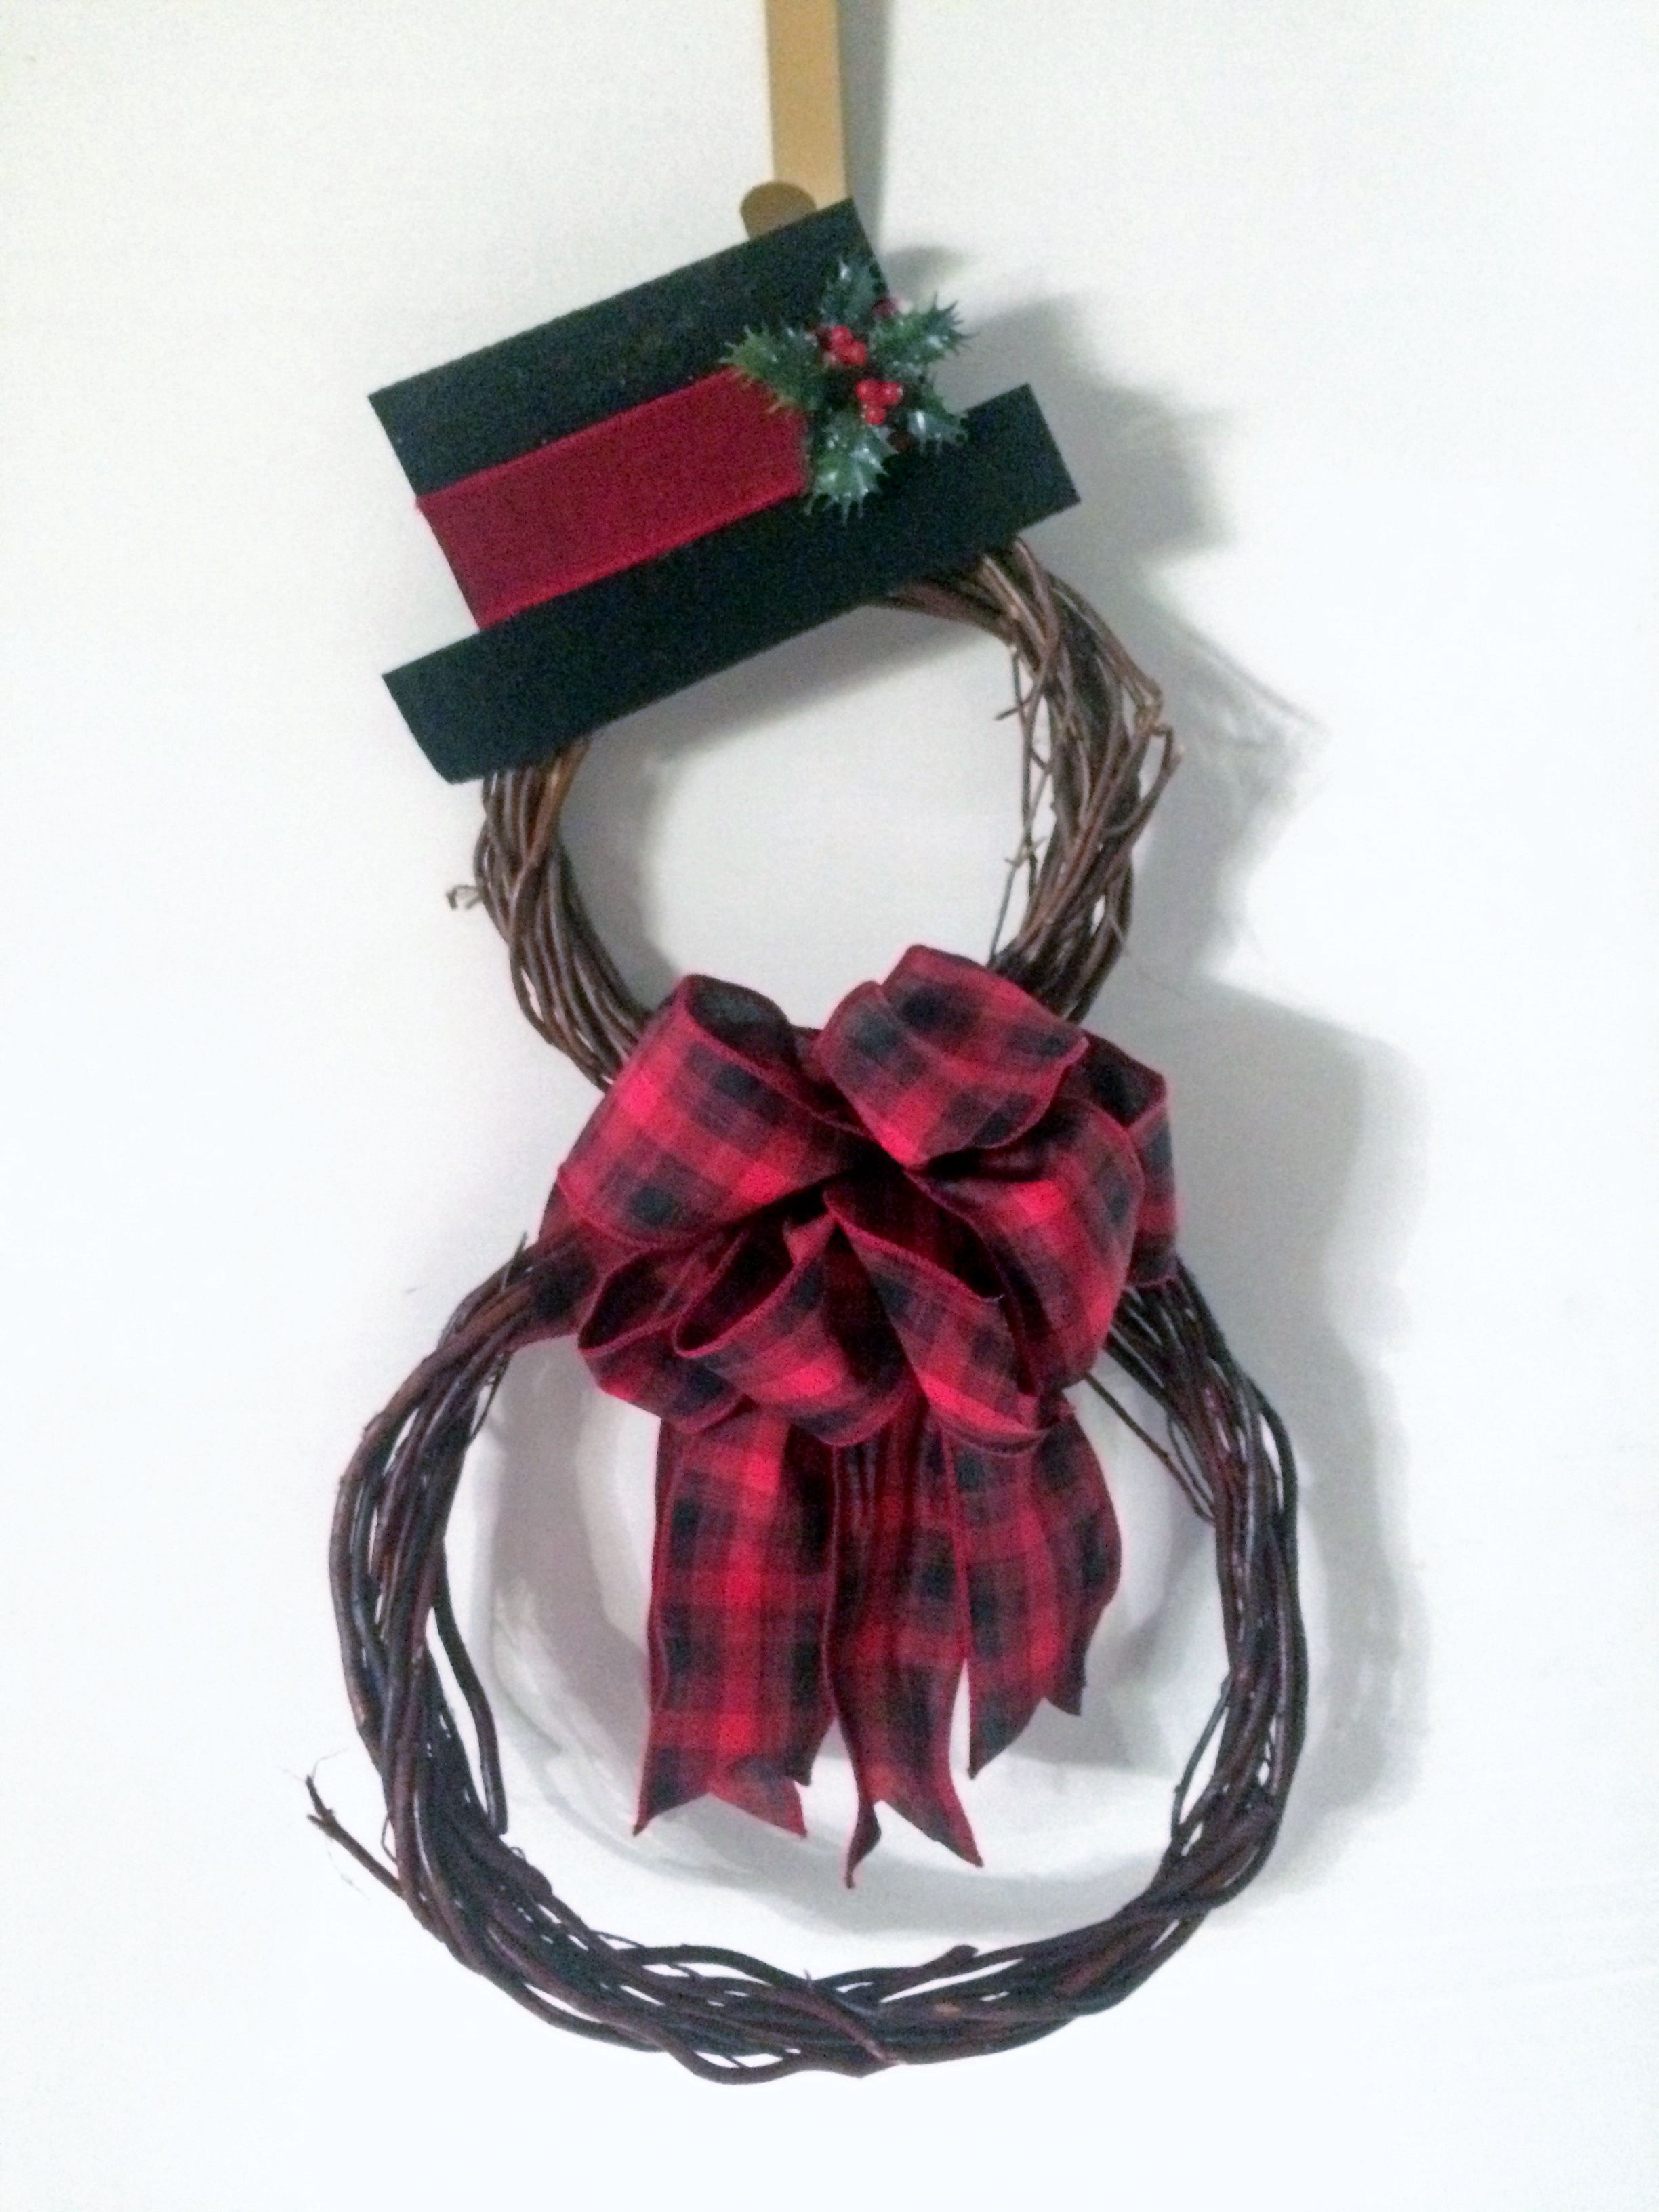 I made this with 2 grapevine wreaths from the Dollar Store